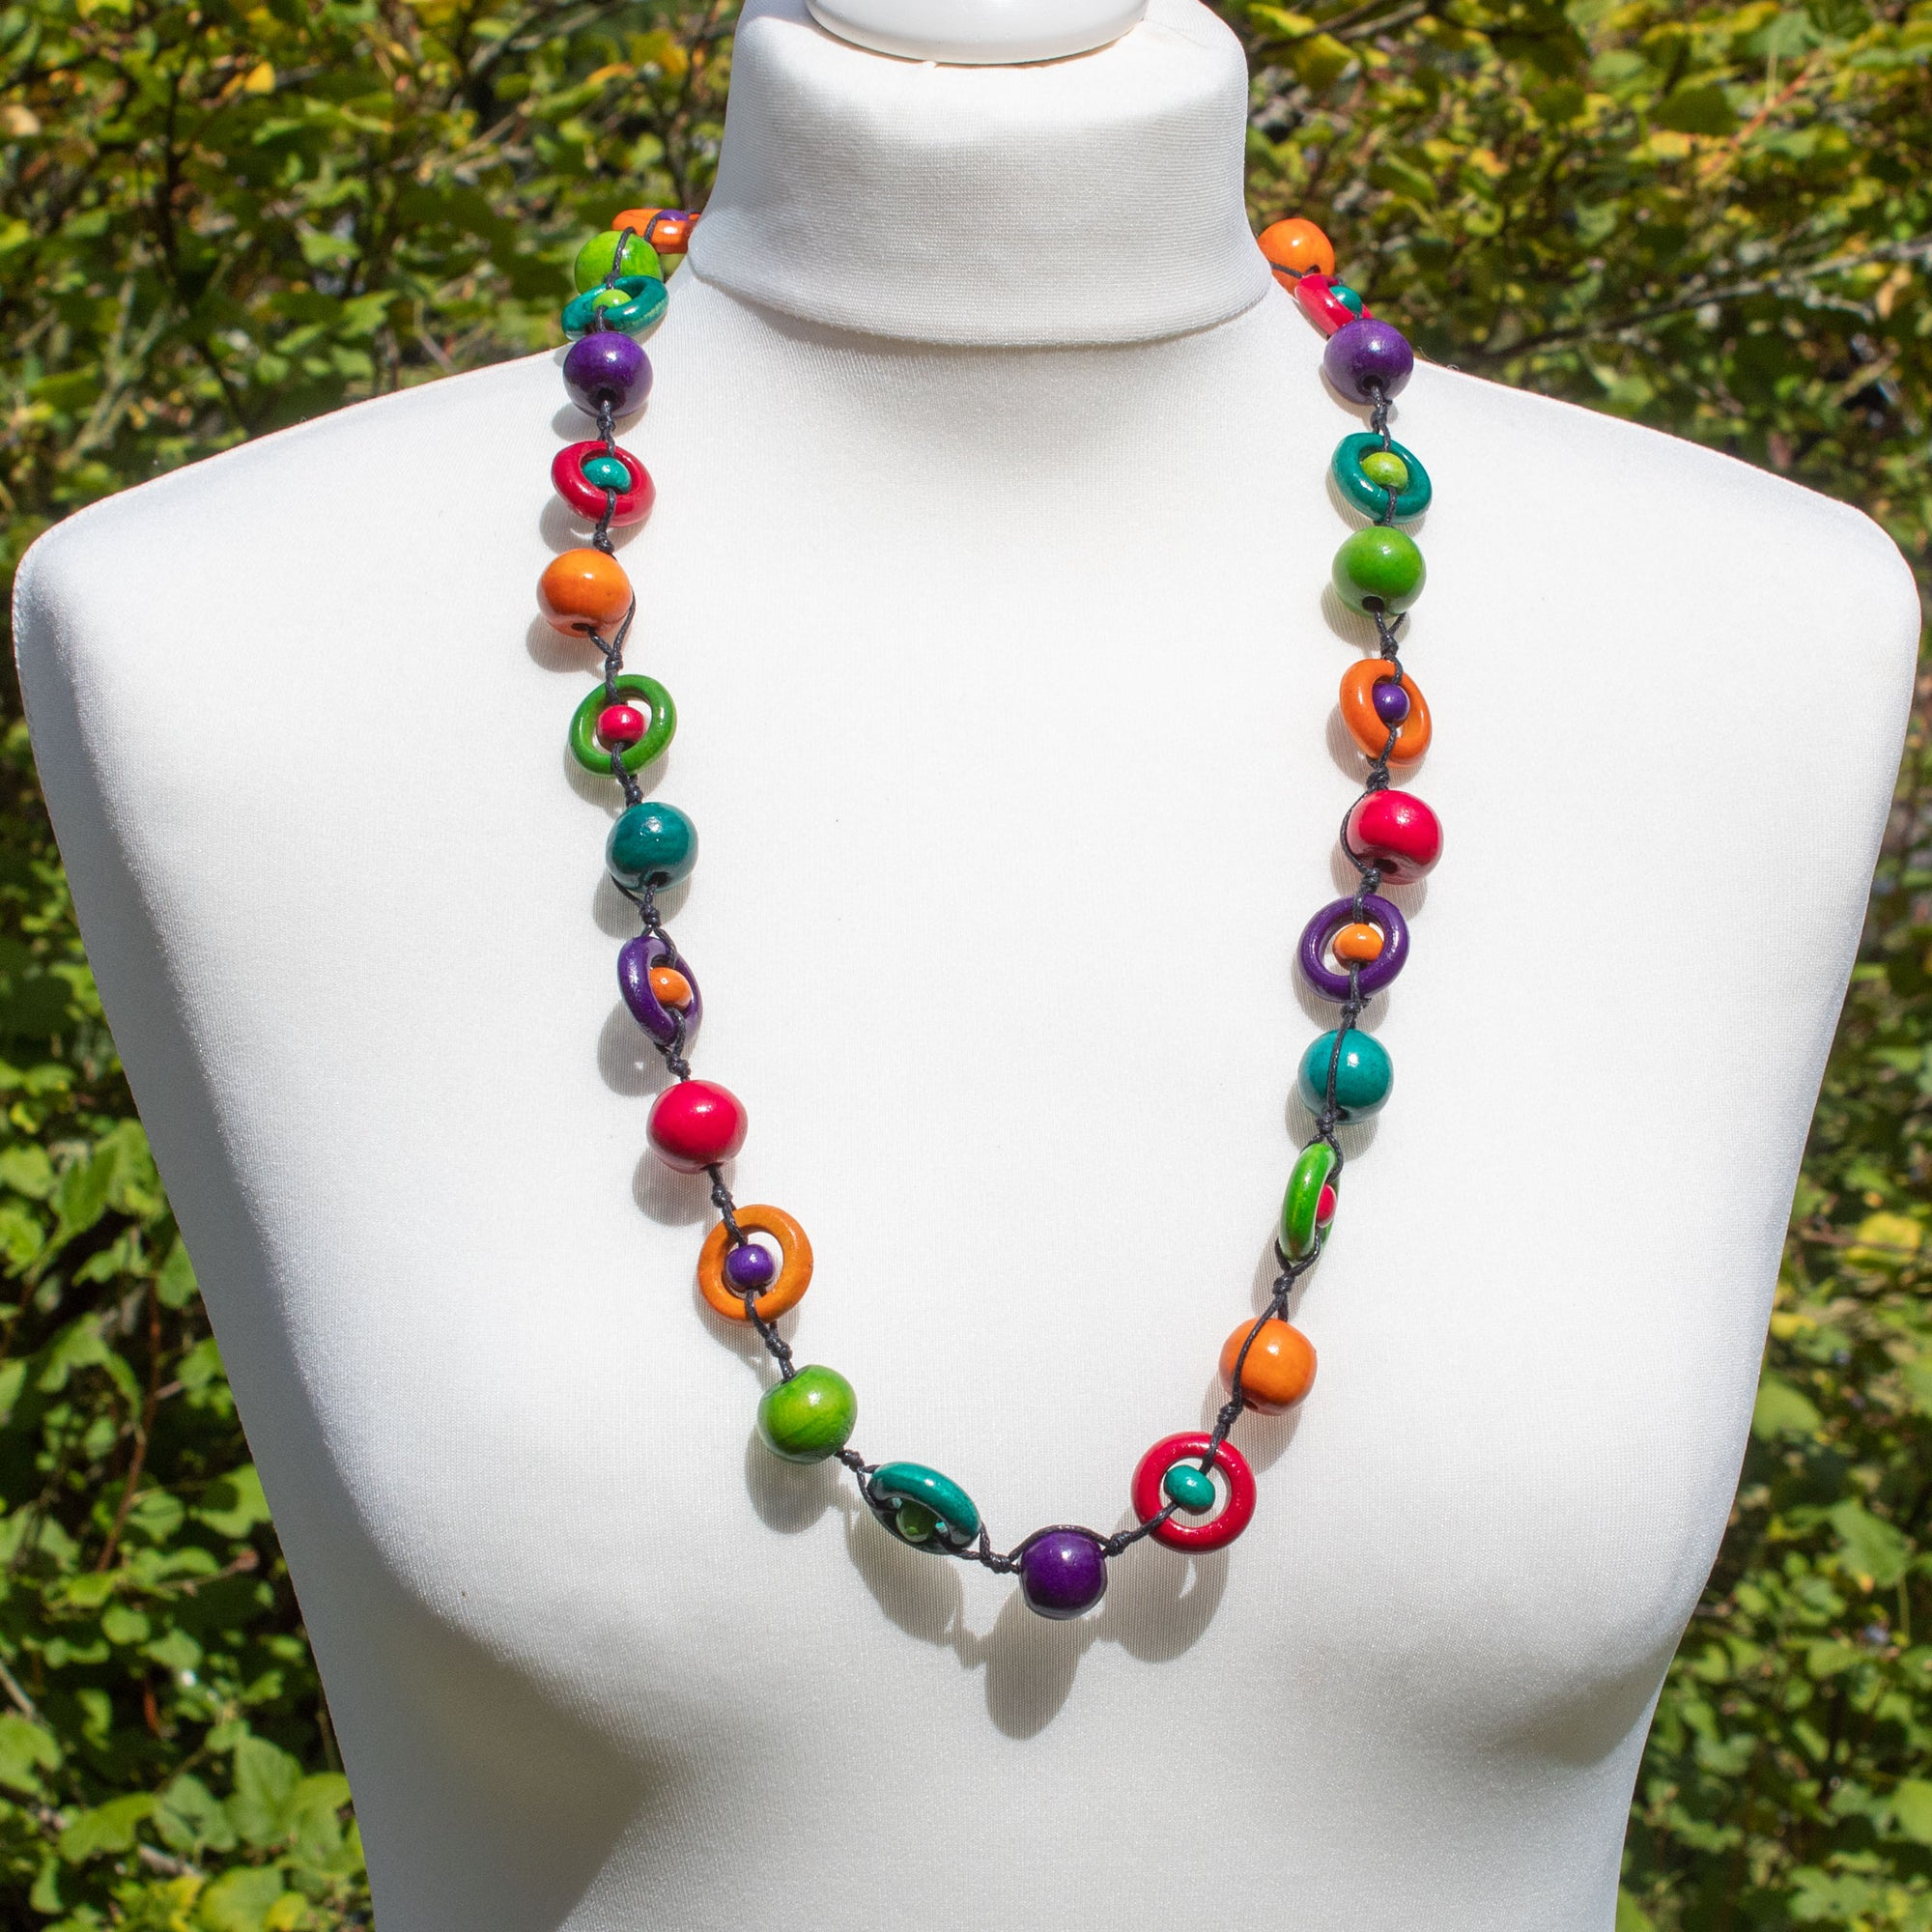 Brightly Coloured Ball & Ring Wooden Bead Necklace | Necklace - The Naughty Shrew